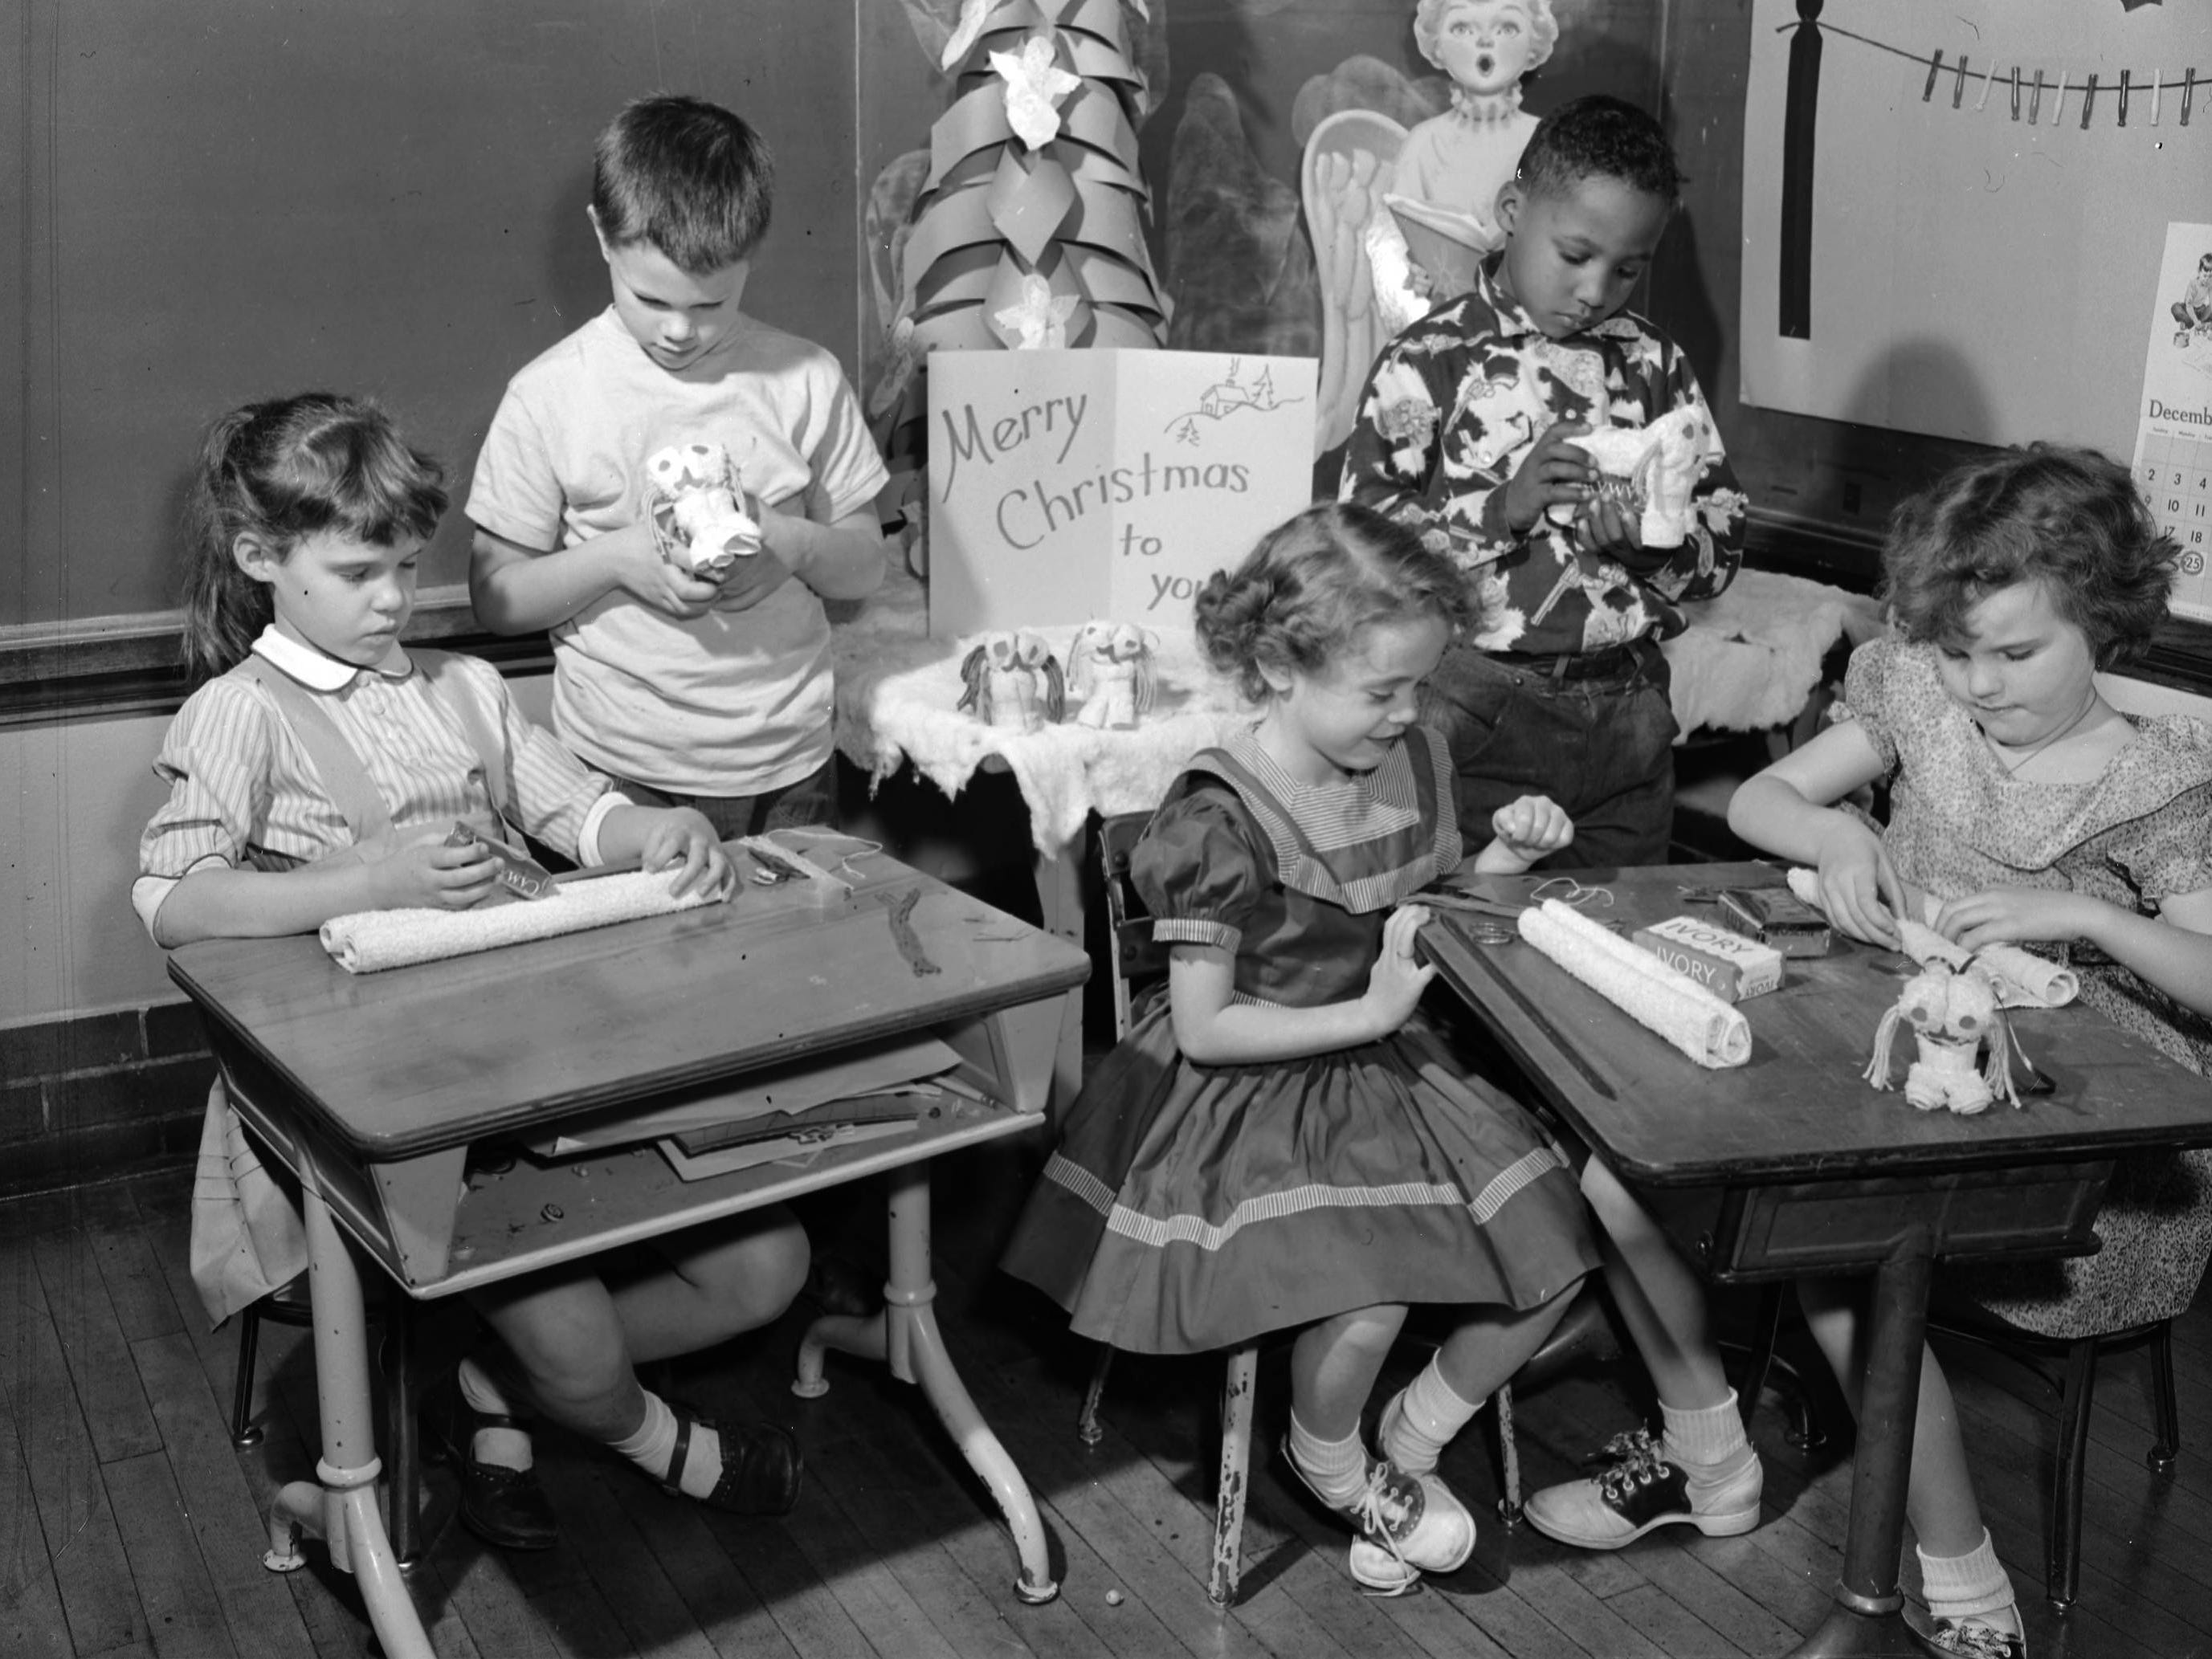 A group of first- and second-grade students in Mrs. Ruth Miller's class at Boyd School. They are creating Christmas presents for their parents. Pictured from left to right are Pam Abbott, Hayden Brunton, Judy Edmonds, Darrell Hutchison, and Georgene Rice. Published in the Leader & Press on Dec. 13, 1956.